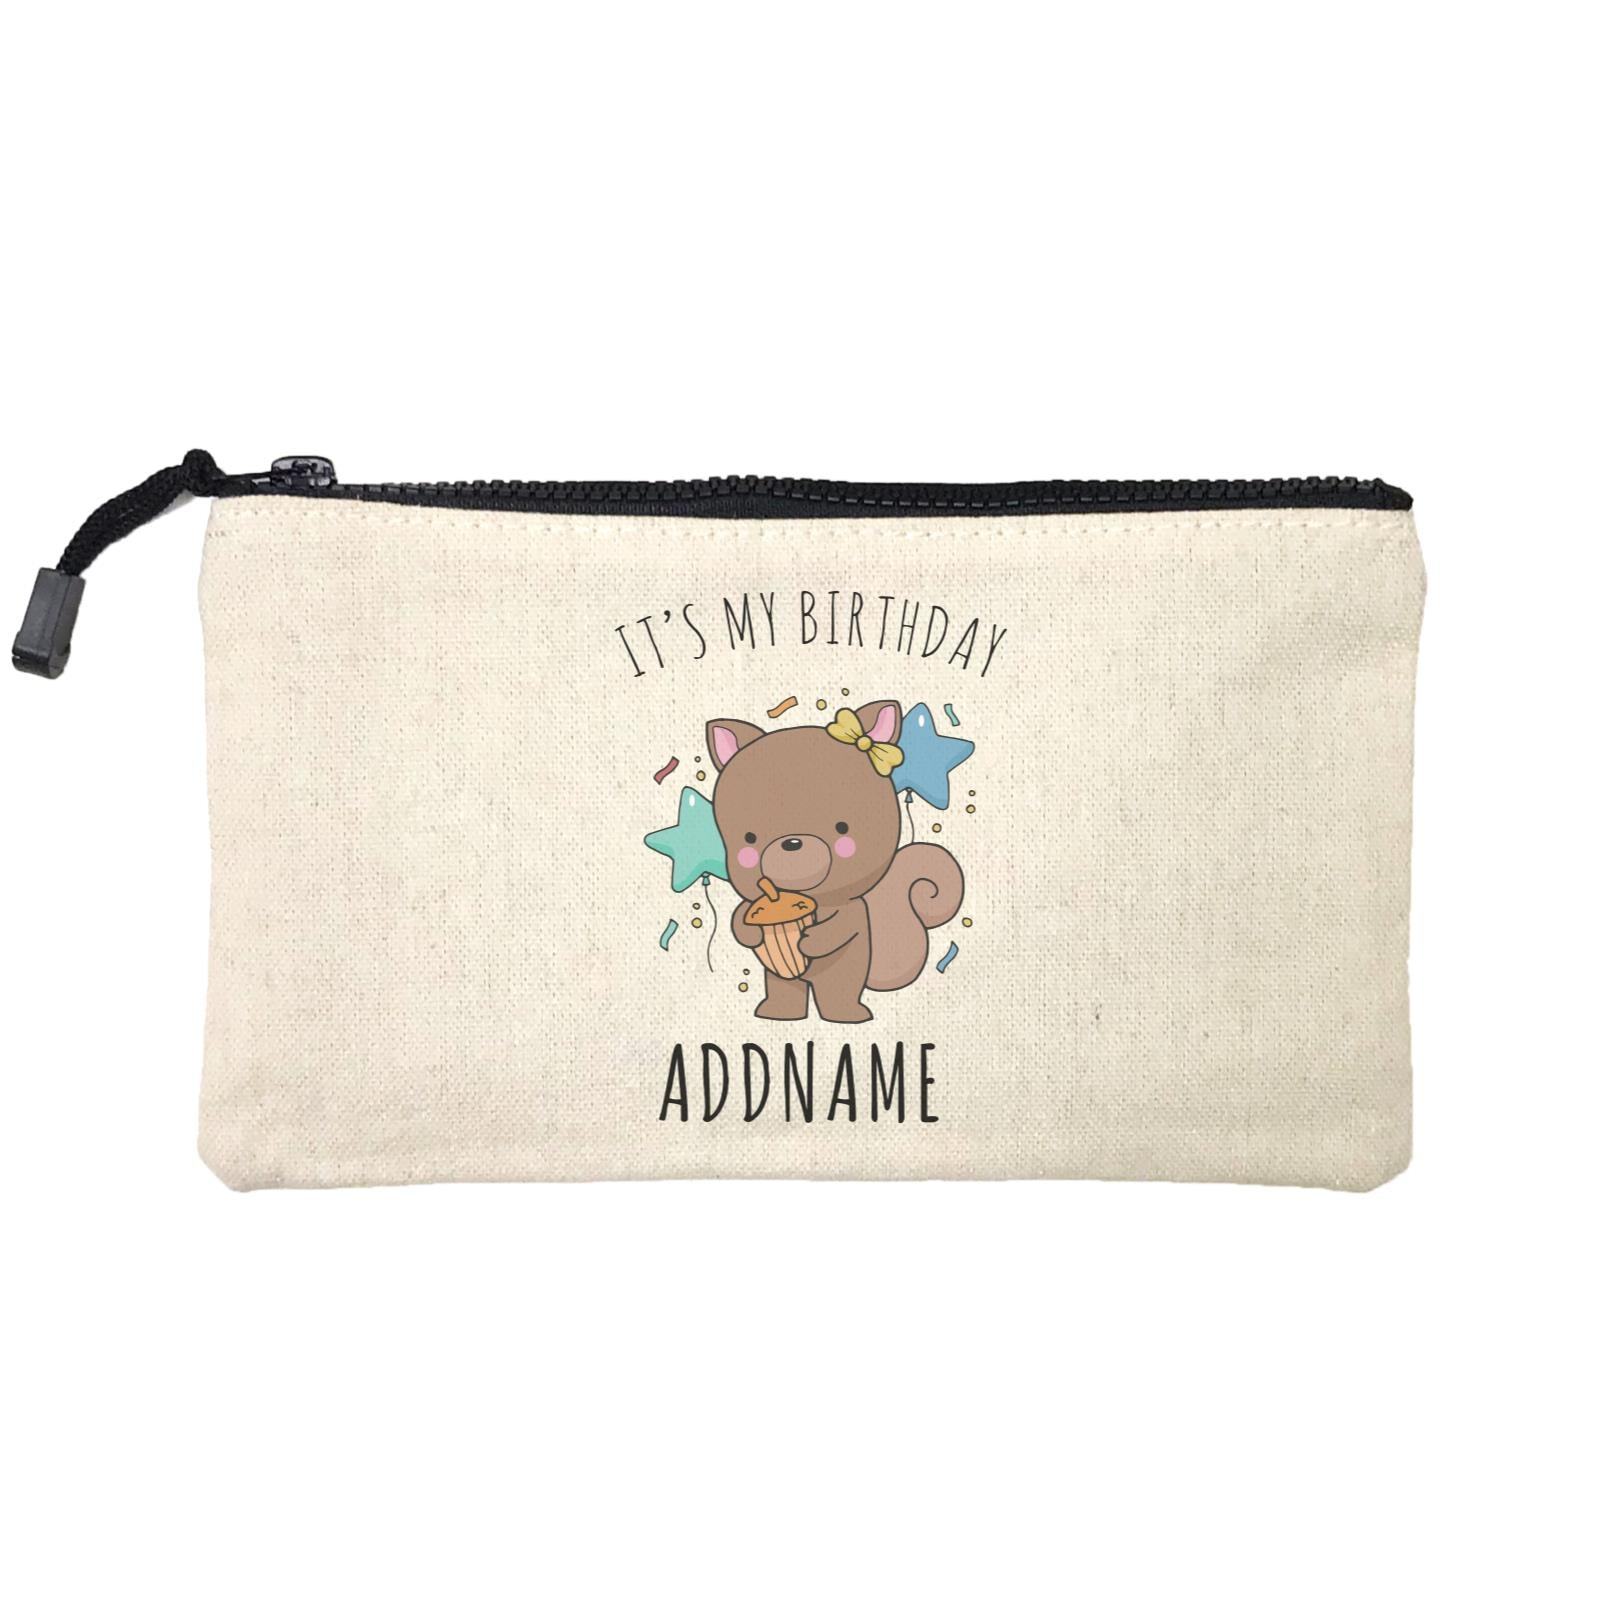 Birthday Sketch Animals Squirrel with Acorn It's My Birthday Addname Mini Accessories Stationery Pouch